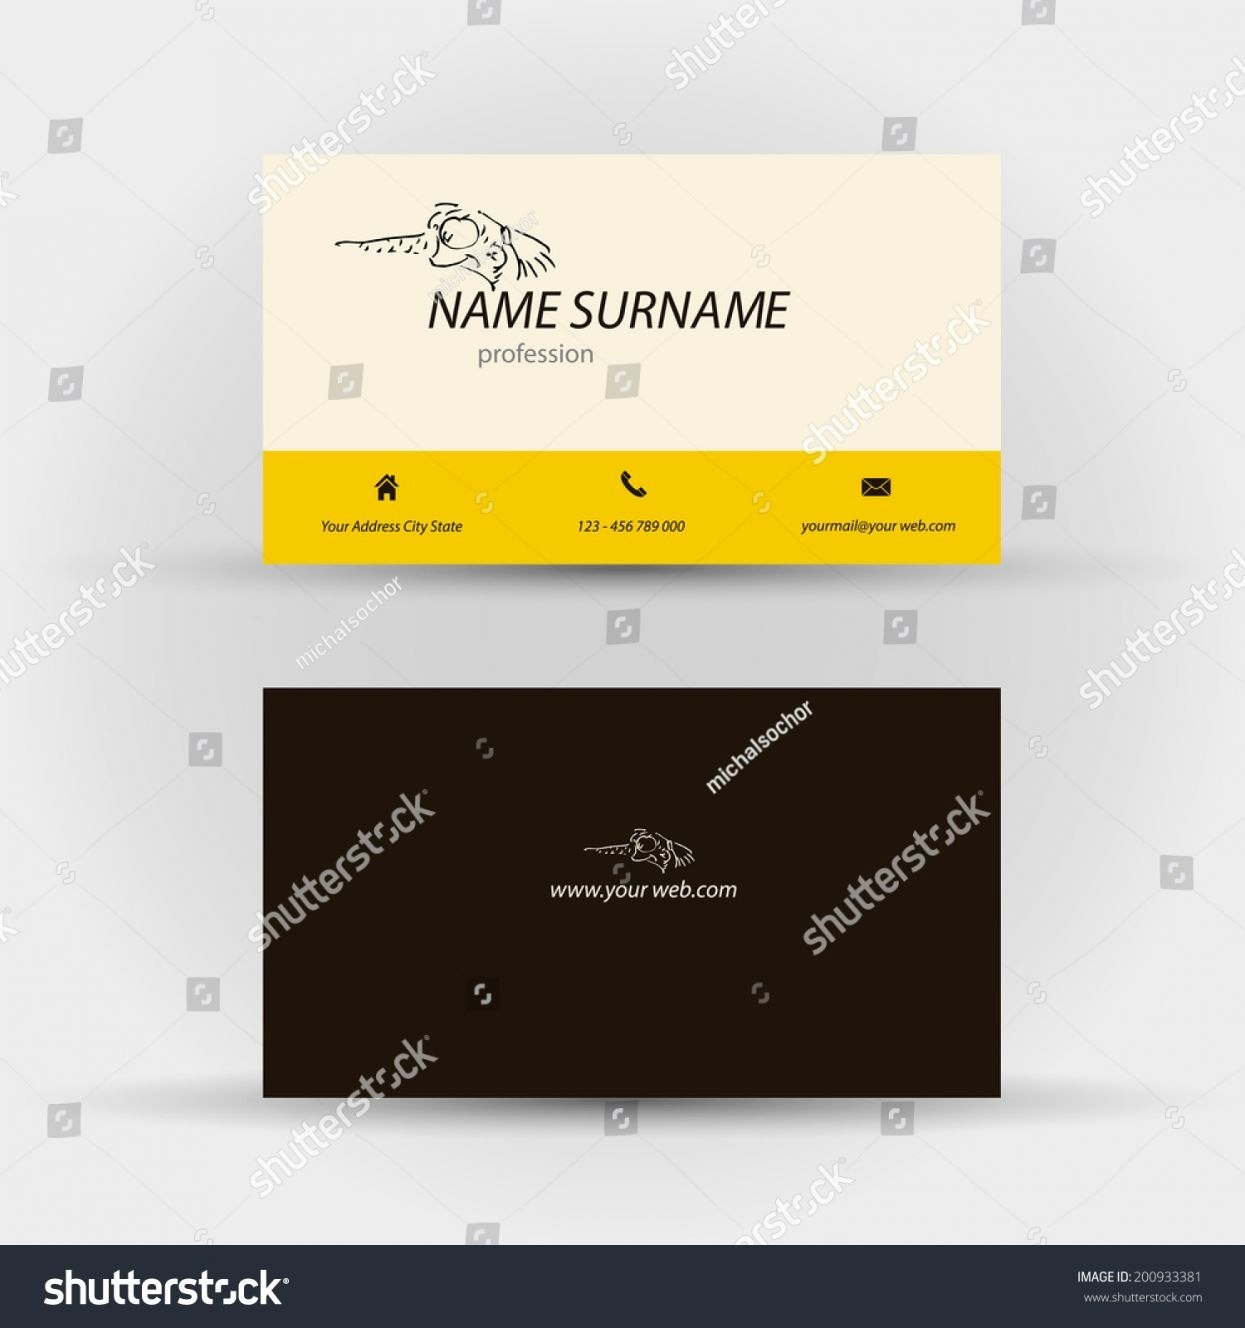 Lovely Business Card Front And Back  Hydraexecutives With Regard To Front And Back Business Card Template Word